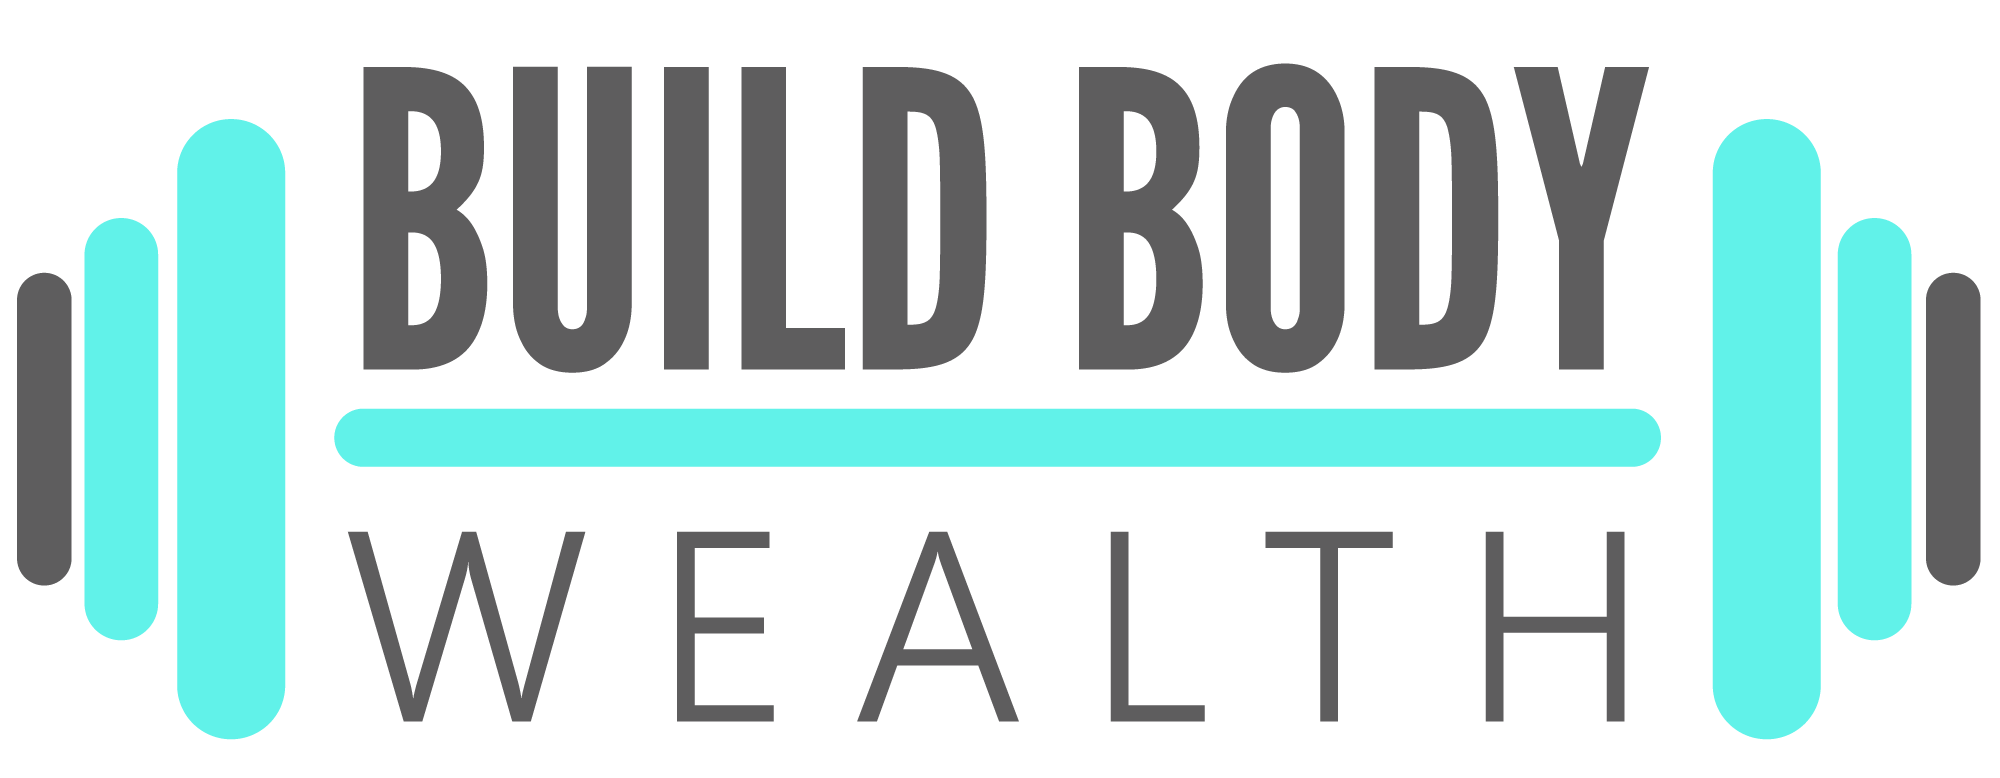 Build Body Wealth Lifestyle